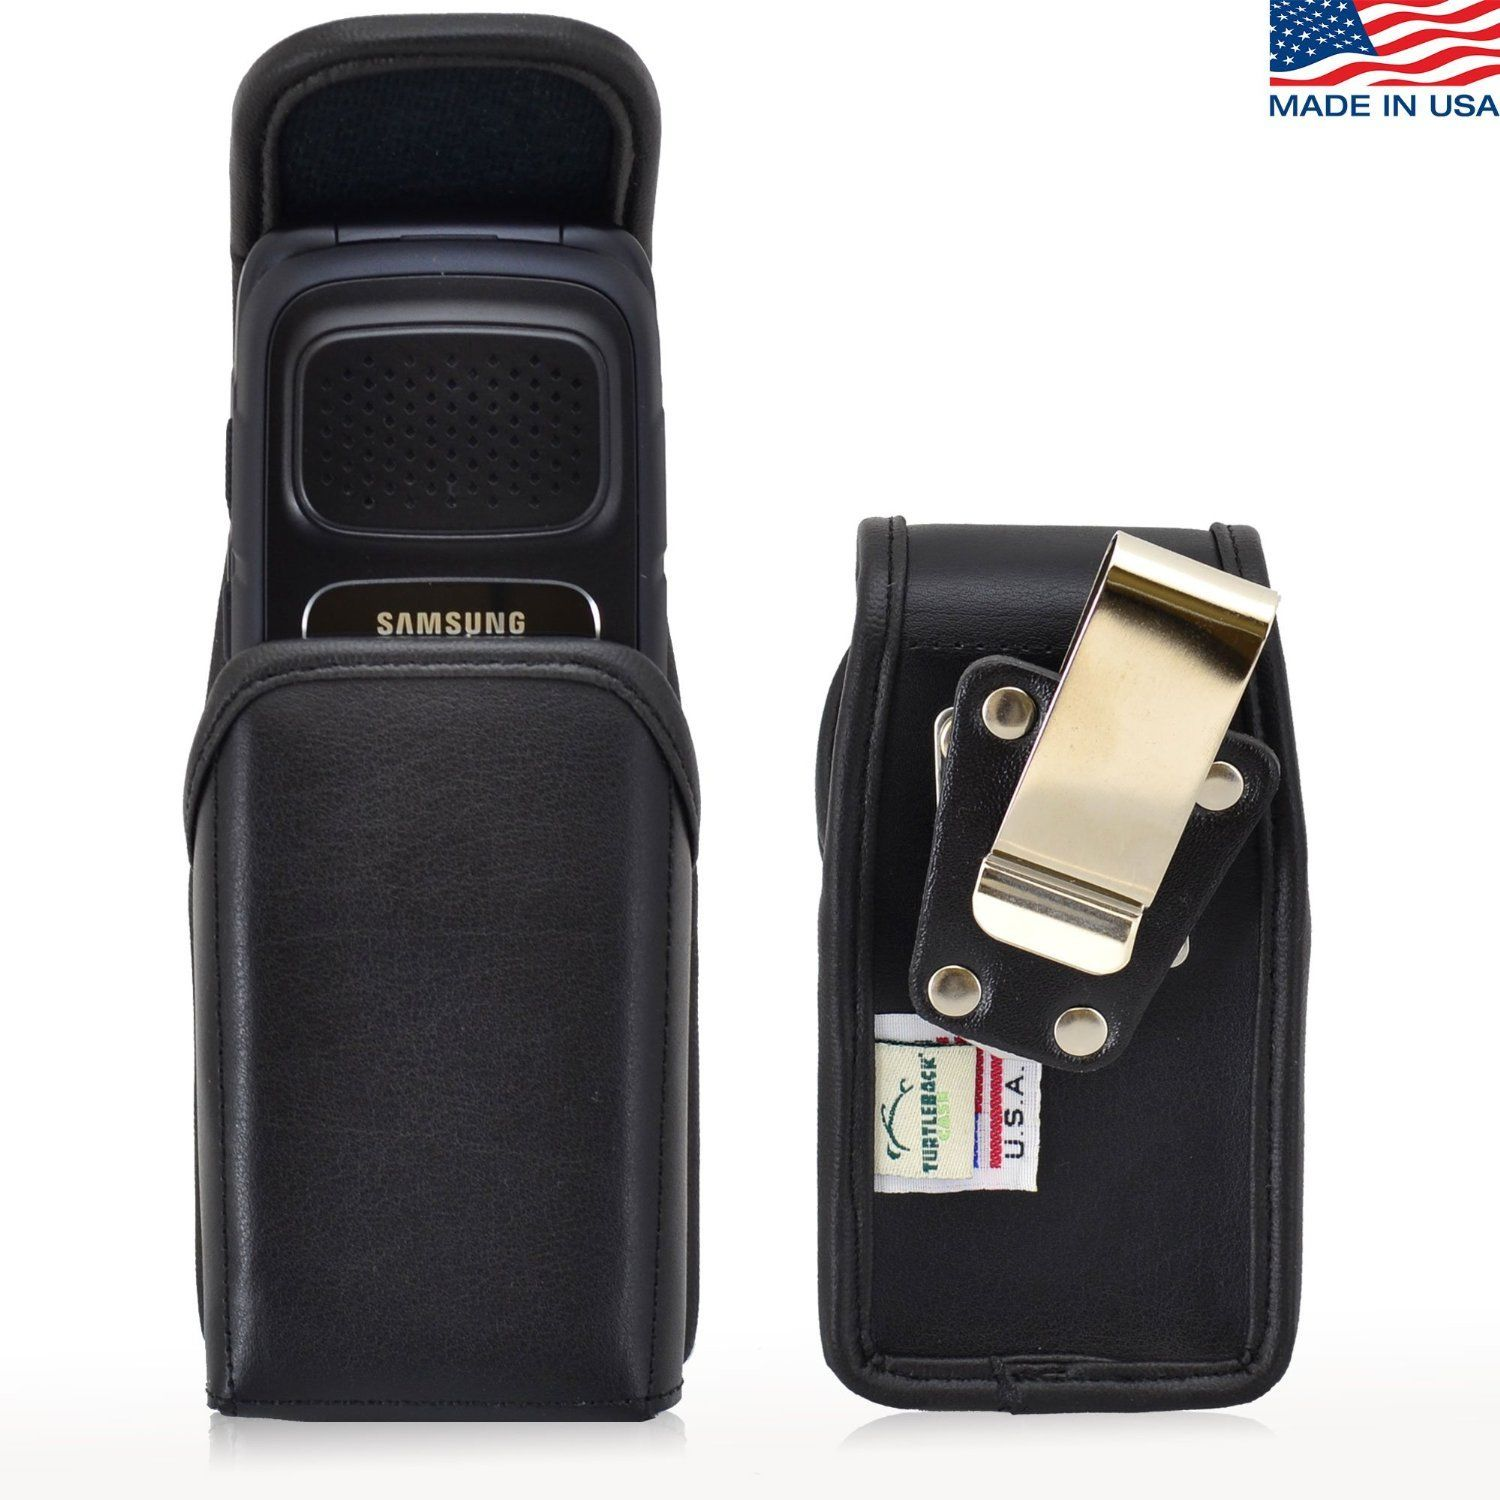 Turtleback Holster Compatible with Samsung Rugby 4, Flip Phone Pouch Case, Magnetic Closure (Black Leather / Rotating Clip) - Made in USA